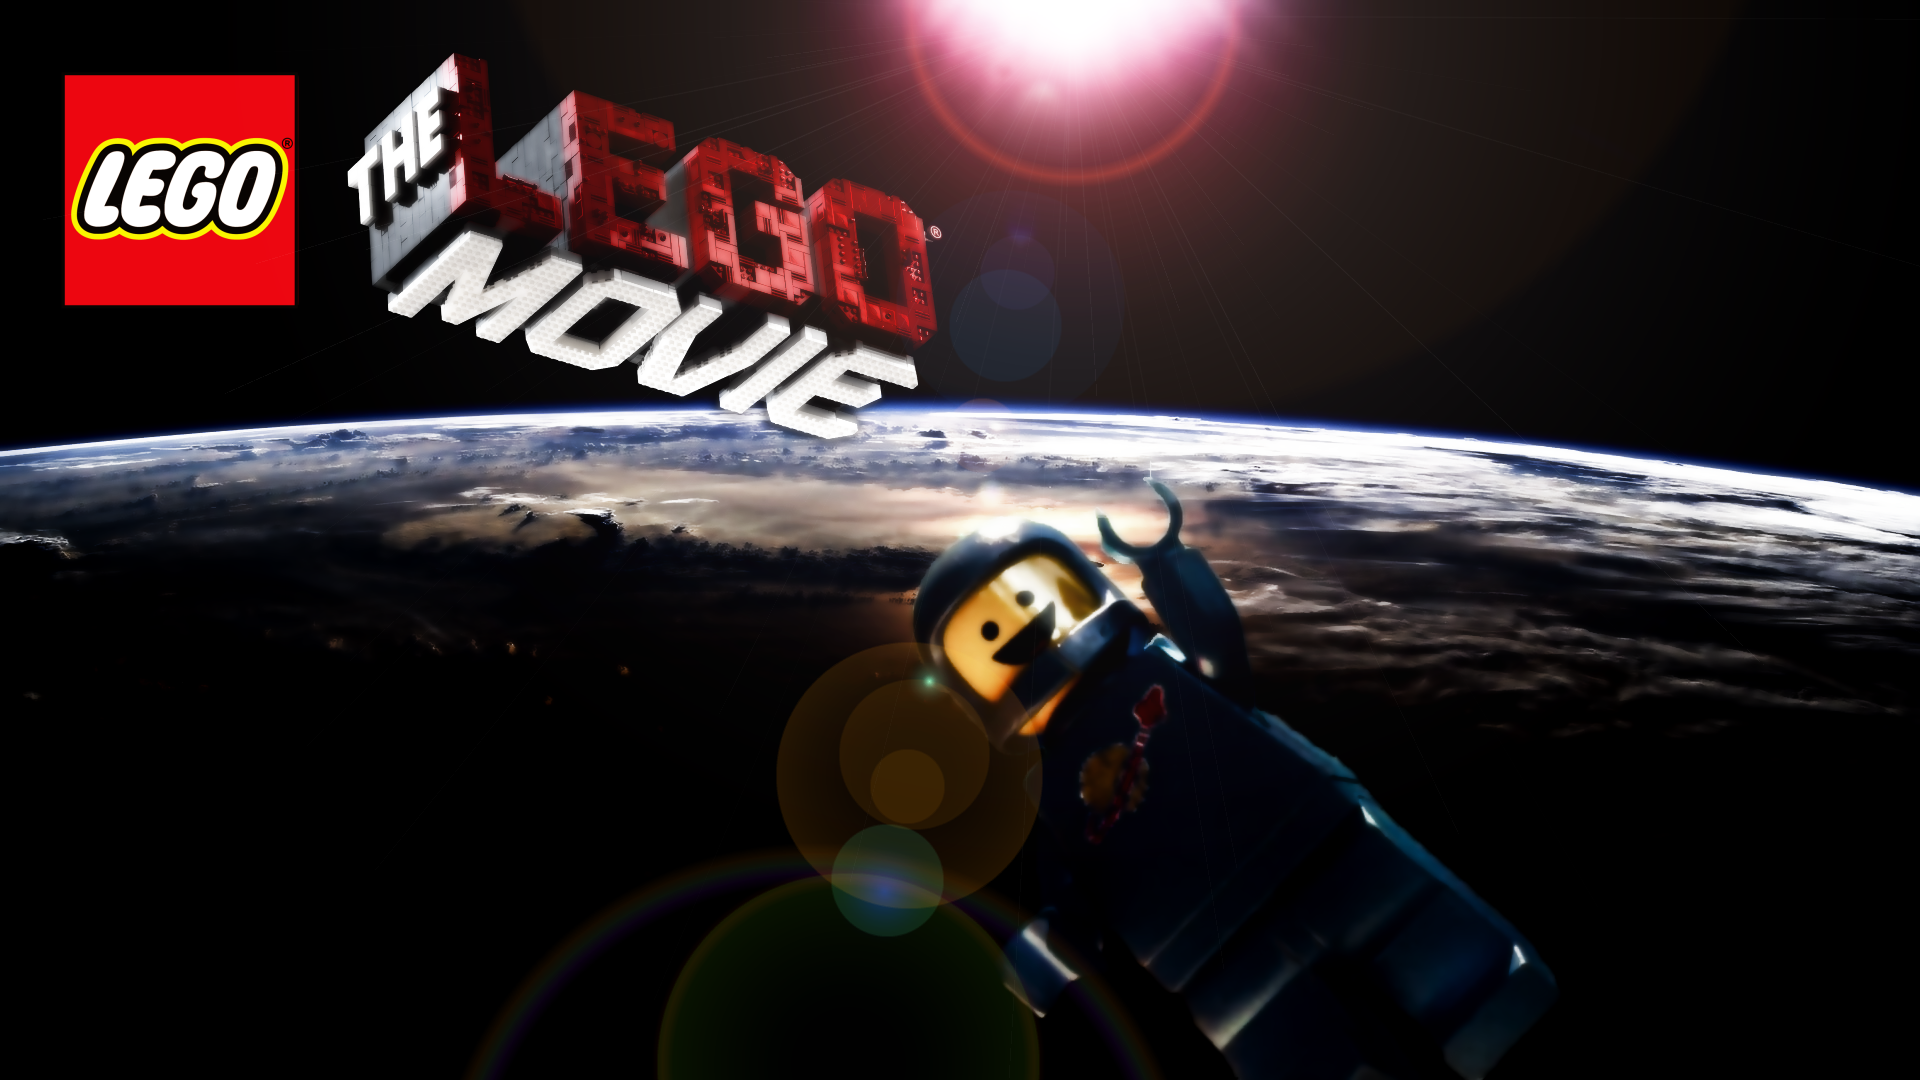 http://wallpapersdsc.net/wp-content/uploads/2016/09/The-LEGO-Movie-HD-Background.png